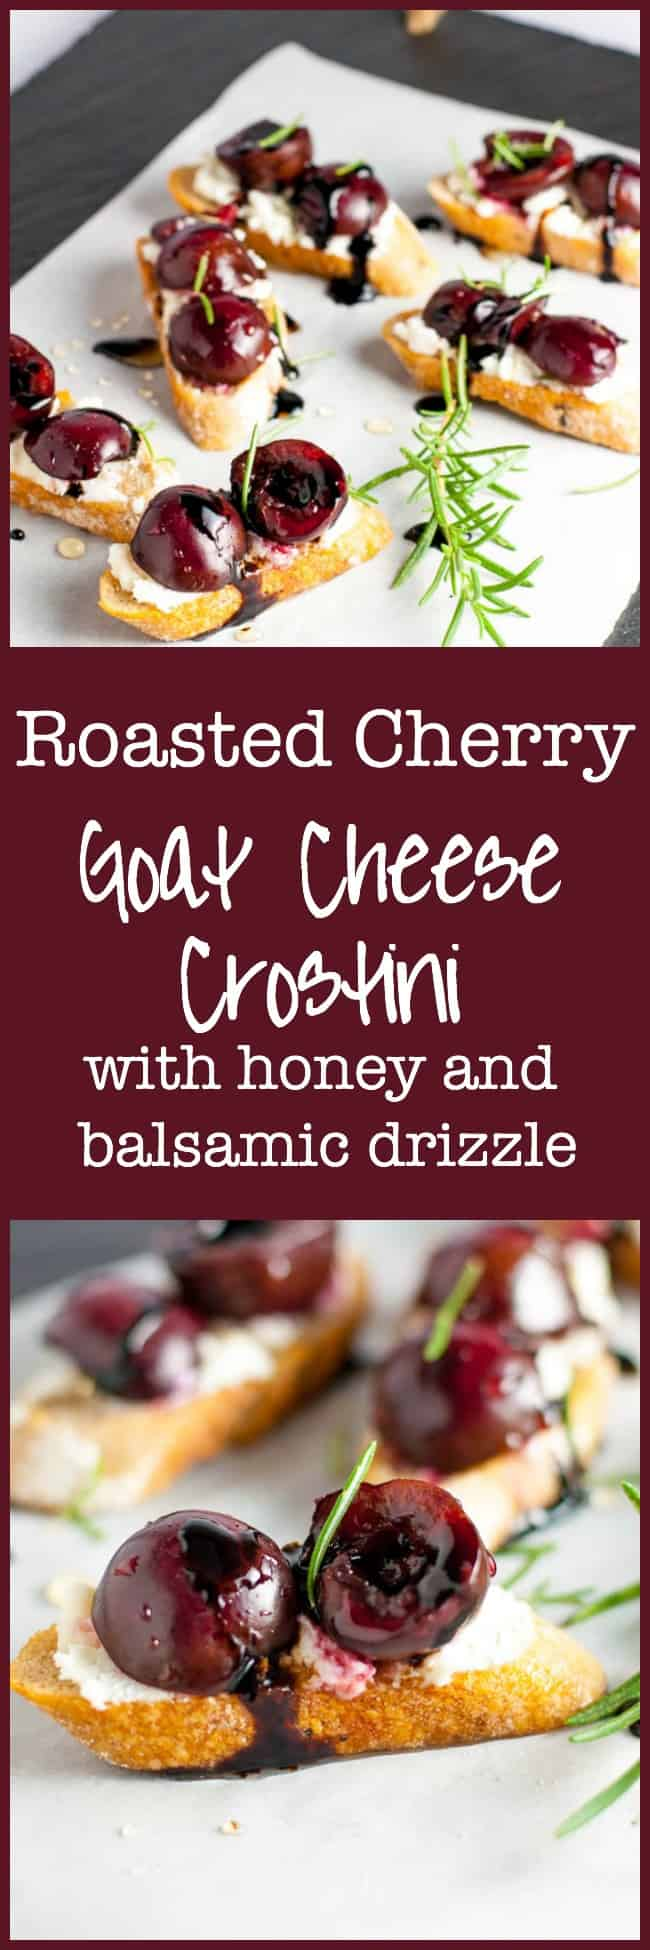 Easy and delicious Roasted Cherry Goat Cheese Crostini with honey and balsamic drizzle. Incredible flavours!  www.flavourandavour.com